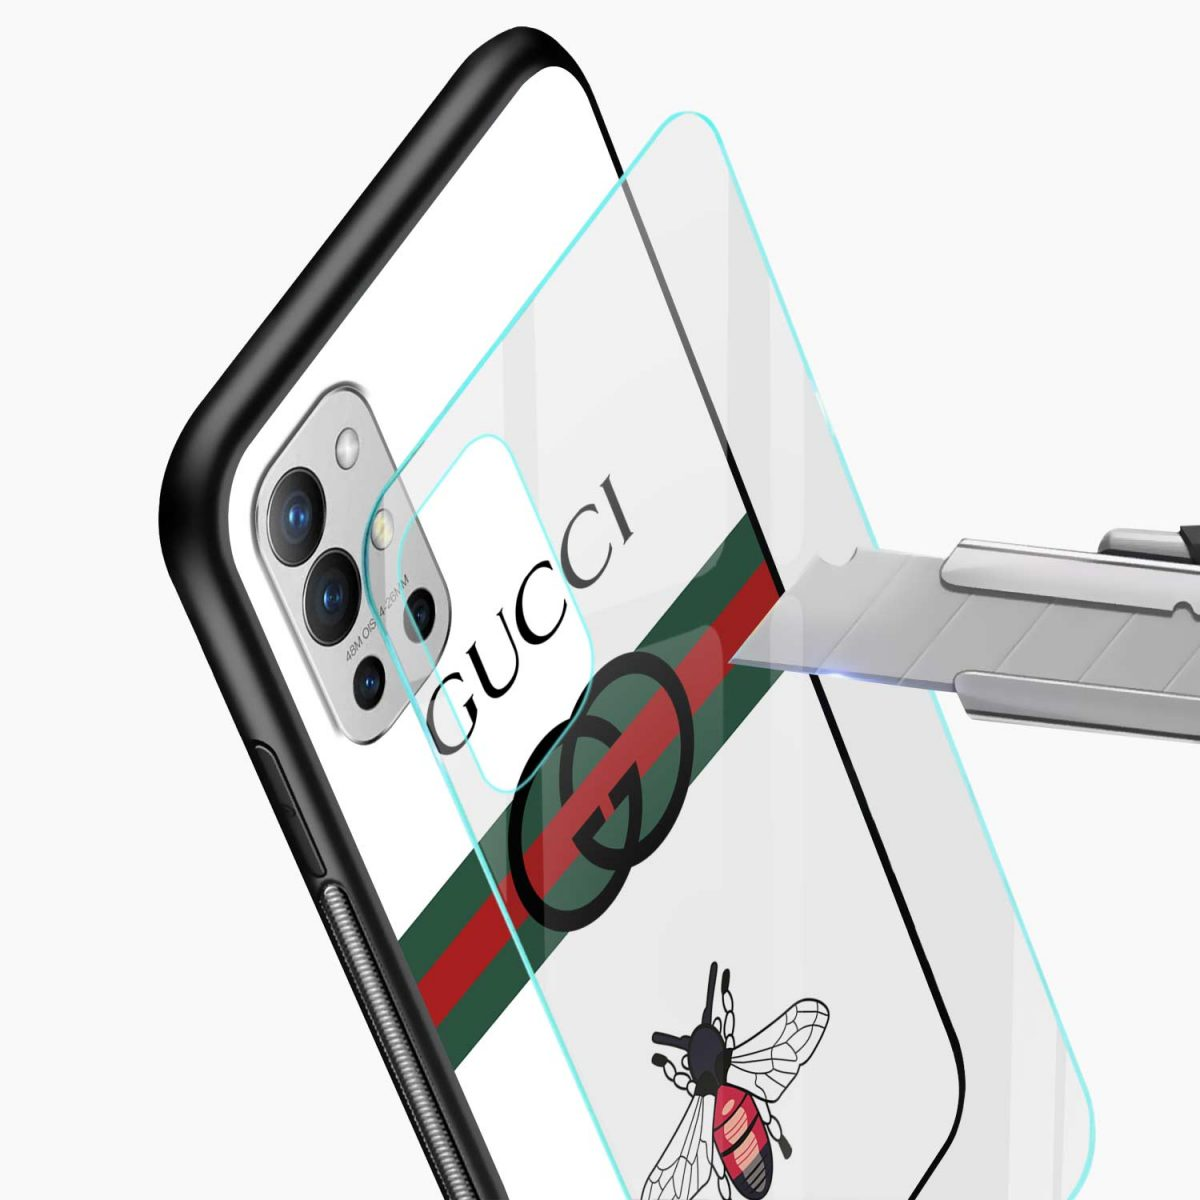 white gucci strips glass view oneplus 9r back cover